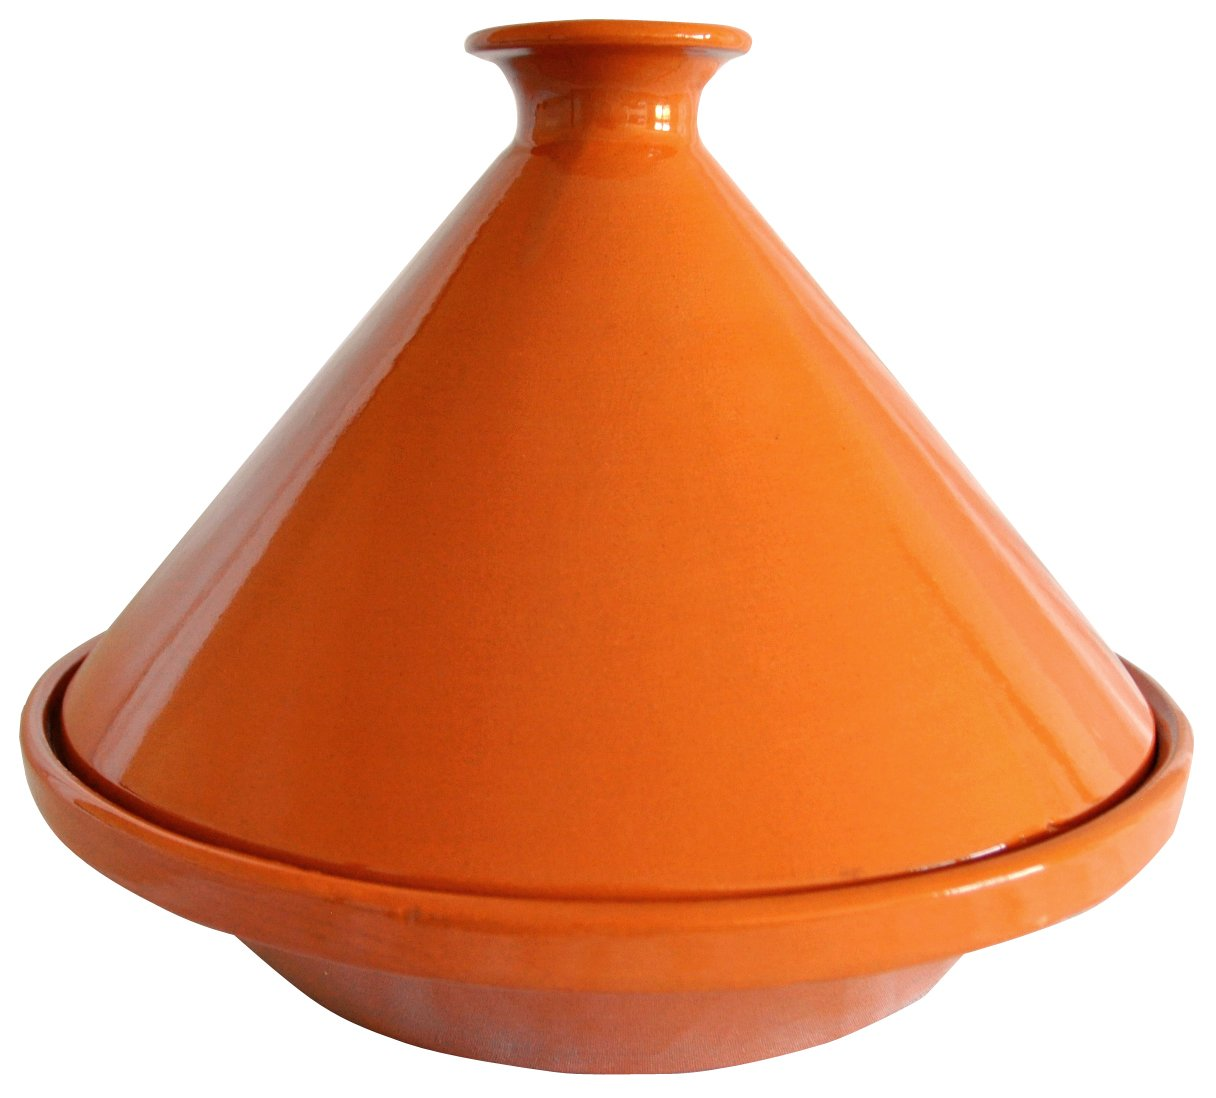 Tagine Cooking Pot Original Moroccan Handmade Clay Cooking 10 Quart Dish Family Size